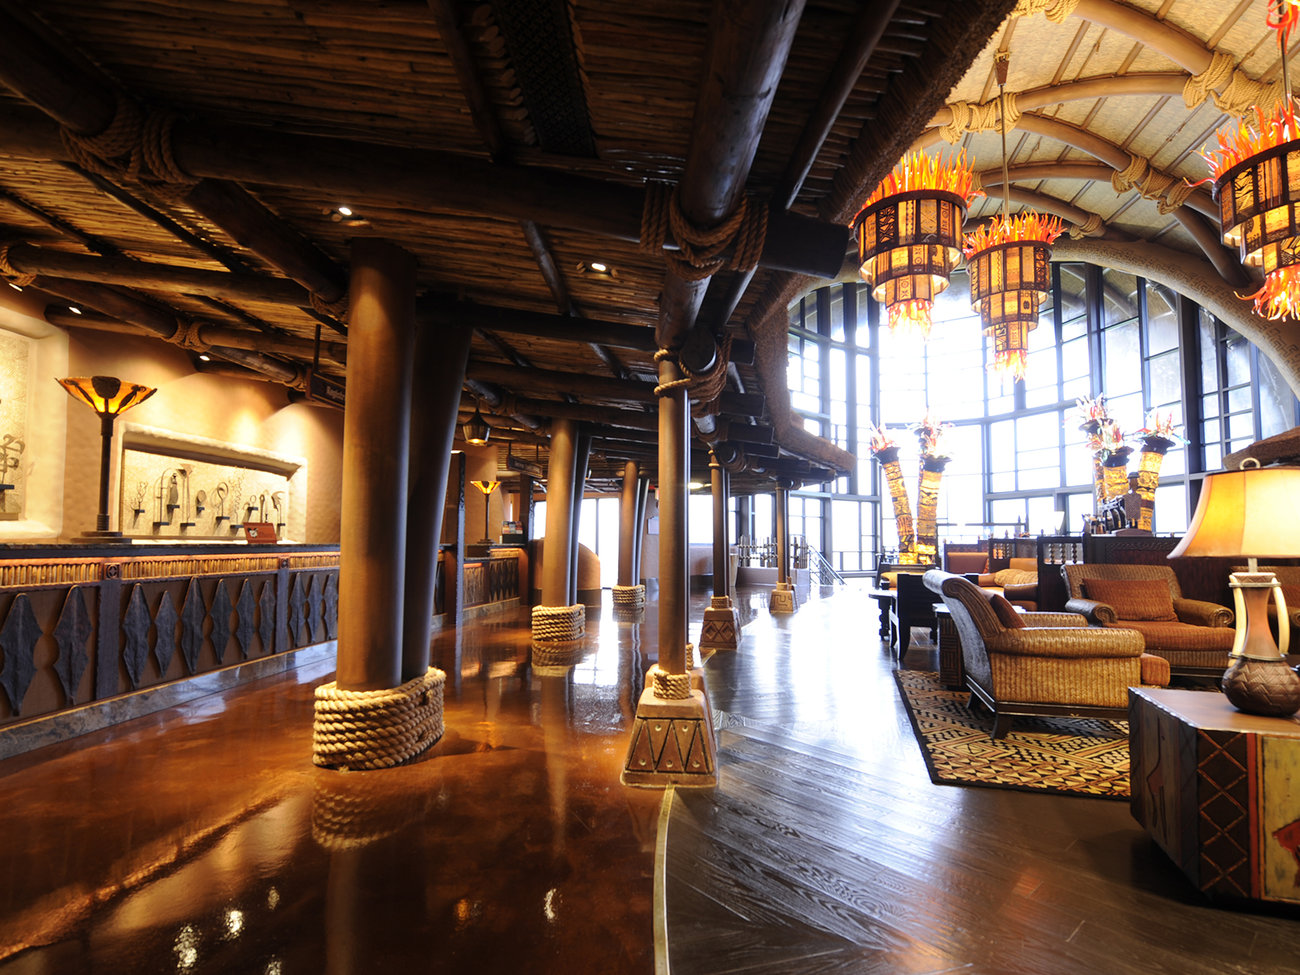 Disney's Animal Kingdom Lodge Hotel in Orlando